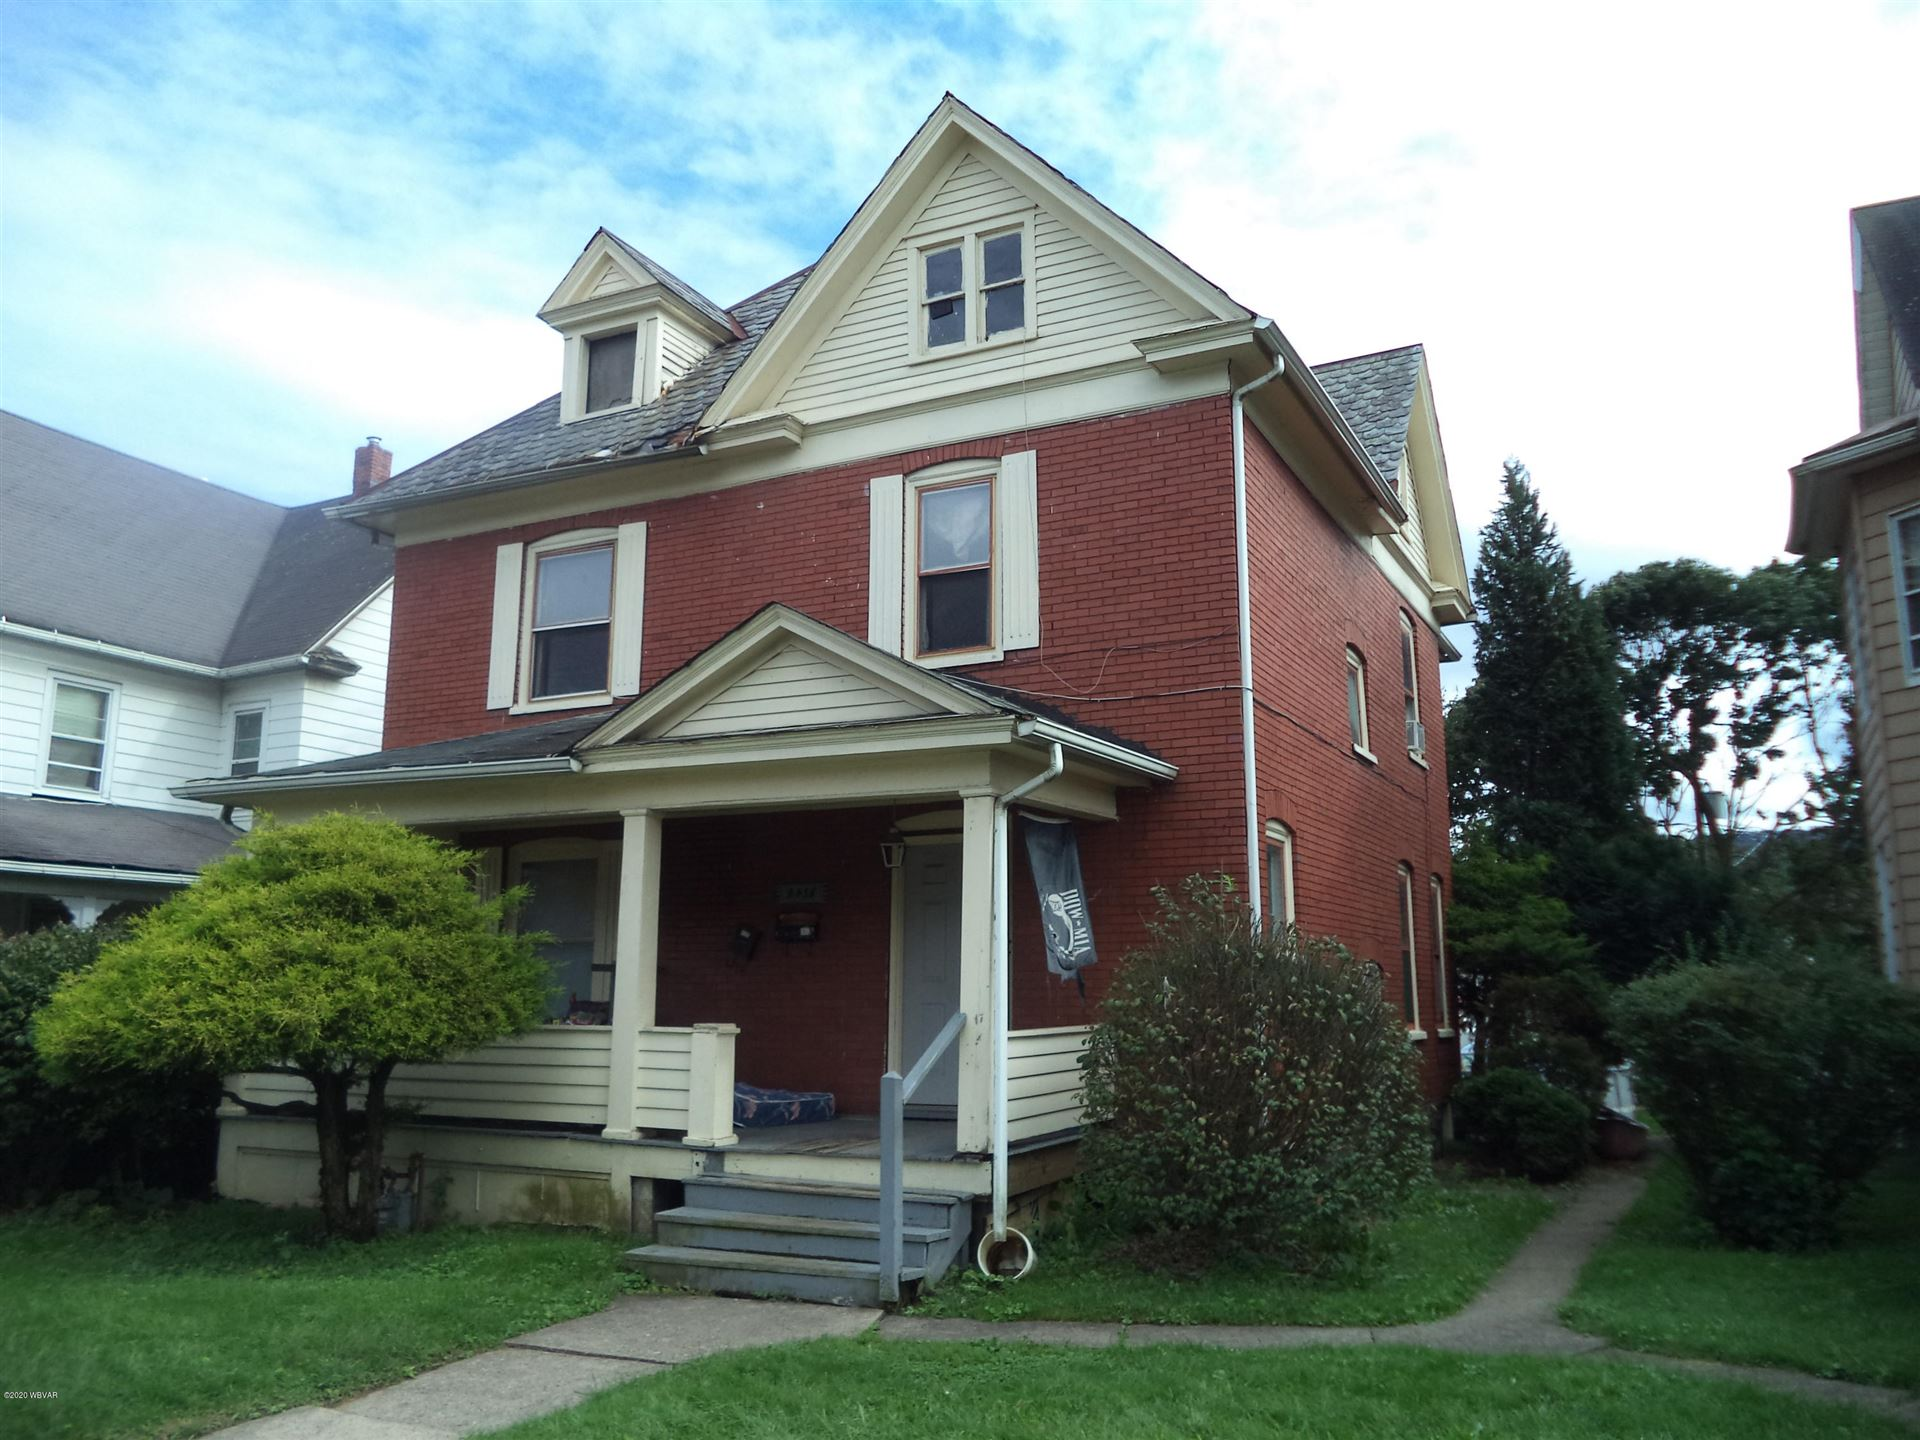 2415 W 4TH STREET, Williamsport, PA 17701 - #: WB-90113